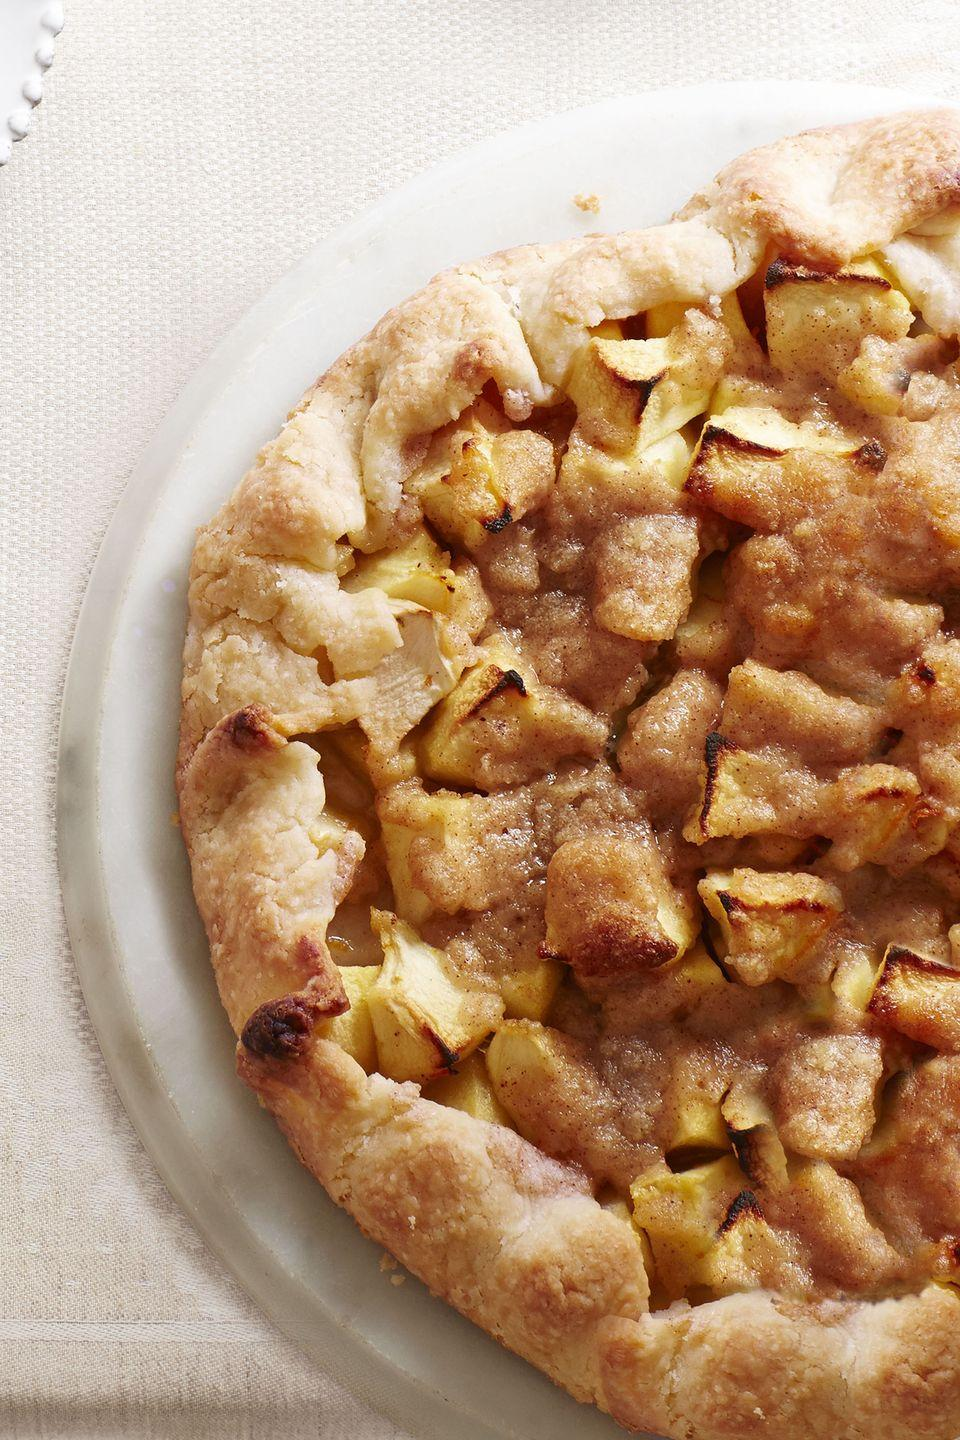 """<p>The dough for this easier, free-form version of apple pie can be made in advance. All you have to do on the big day is roll it out, fill it, and pop it in the oven as you sit down to feast.</p><p><a href=""""https://www.goodhousekeeping.com/food-recipes/a15408/apple-crostata-recipe-ghk1113/"""" rel=""""nofollow noopener"""" target=""""_blank"""" data-ylk=""""slk:Get the recipe for Apple Crostata »"""" class=""""link rapid-noclick-resp""""><em>Get the recipe for Apple Crostata »</em></a></p>"""